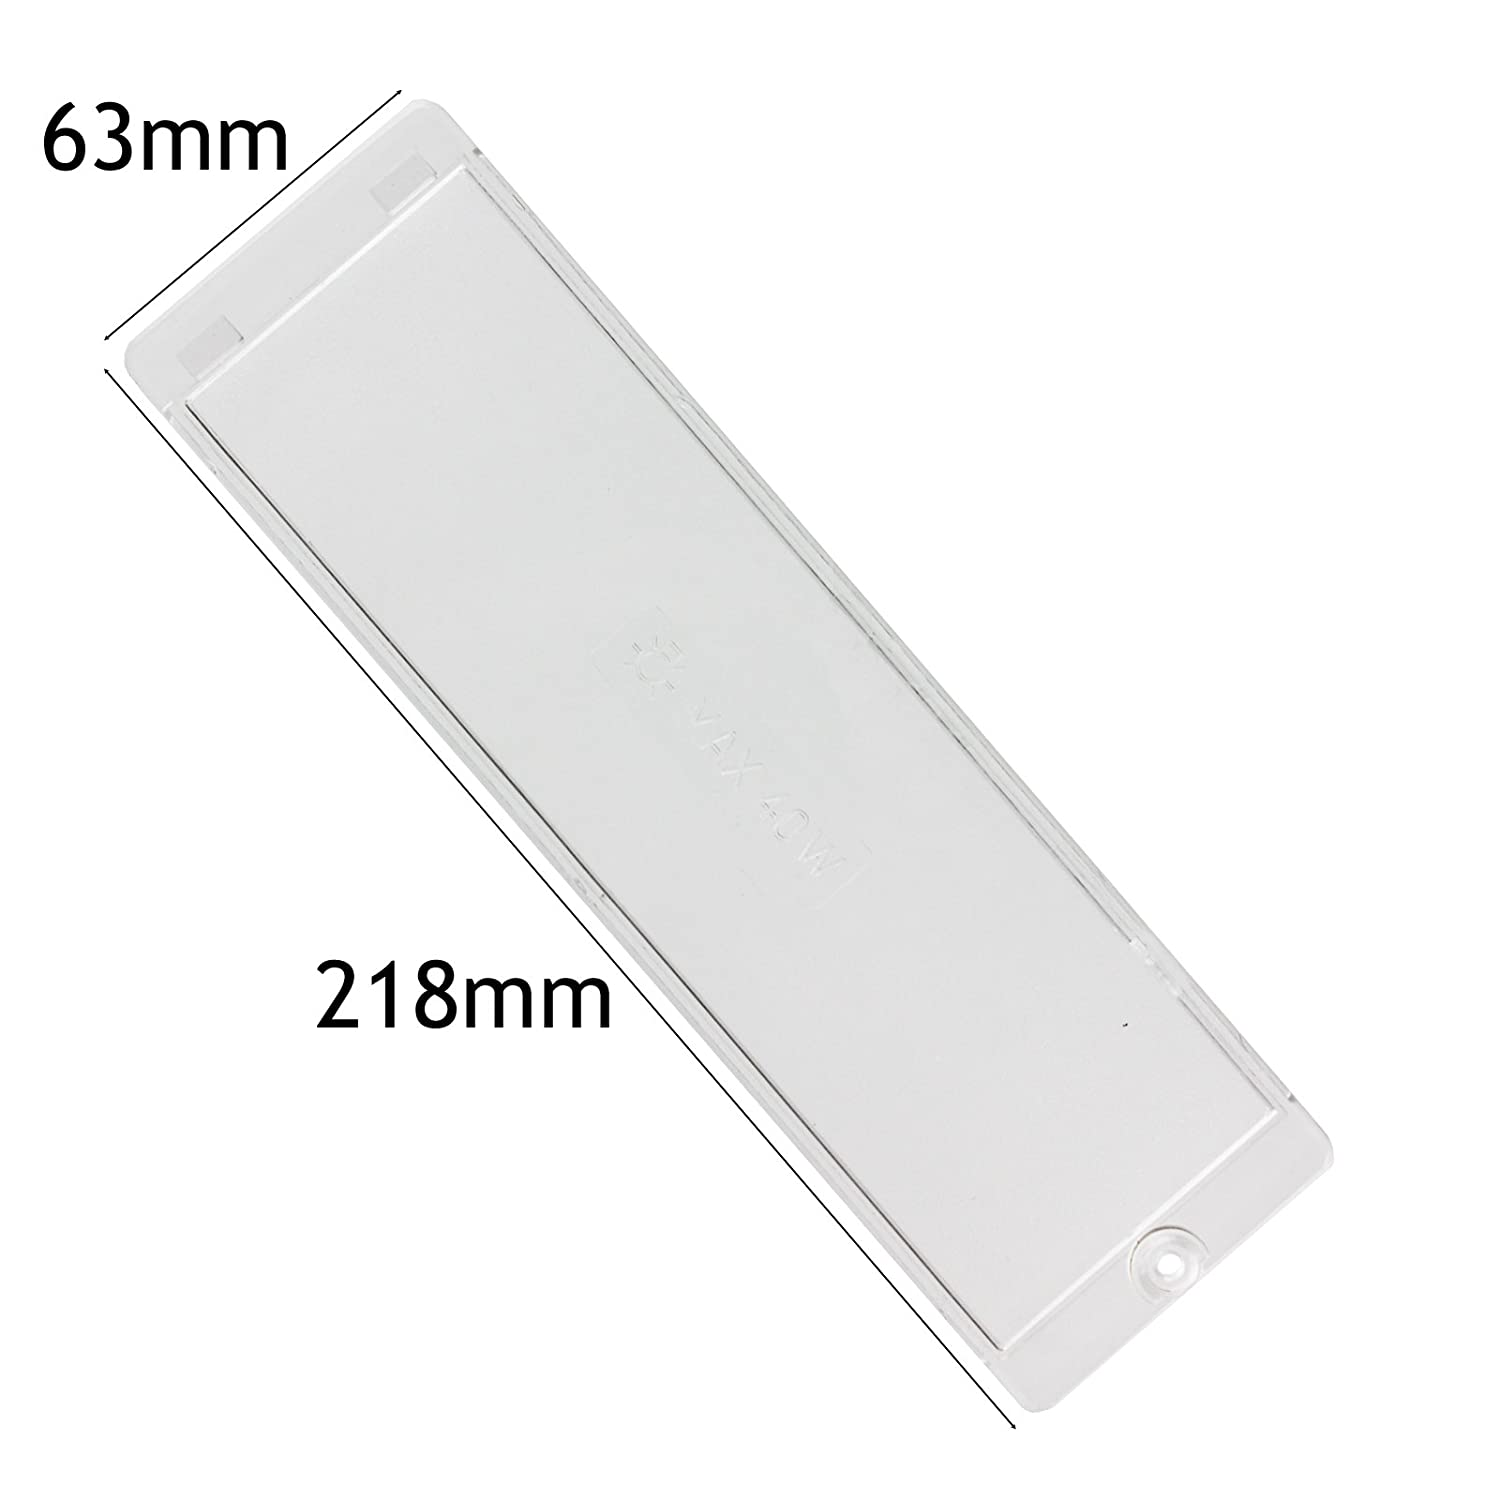 SPARES2GO Cooker Hood Light Diffuser/Lens Cover Plate (218mm x 63mm)